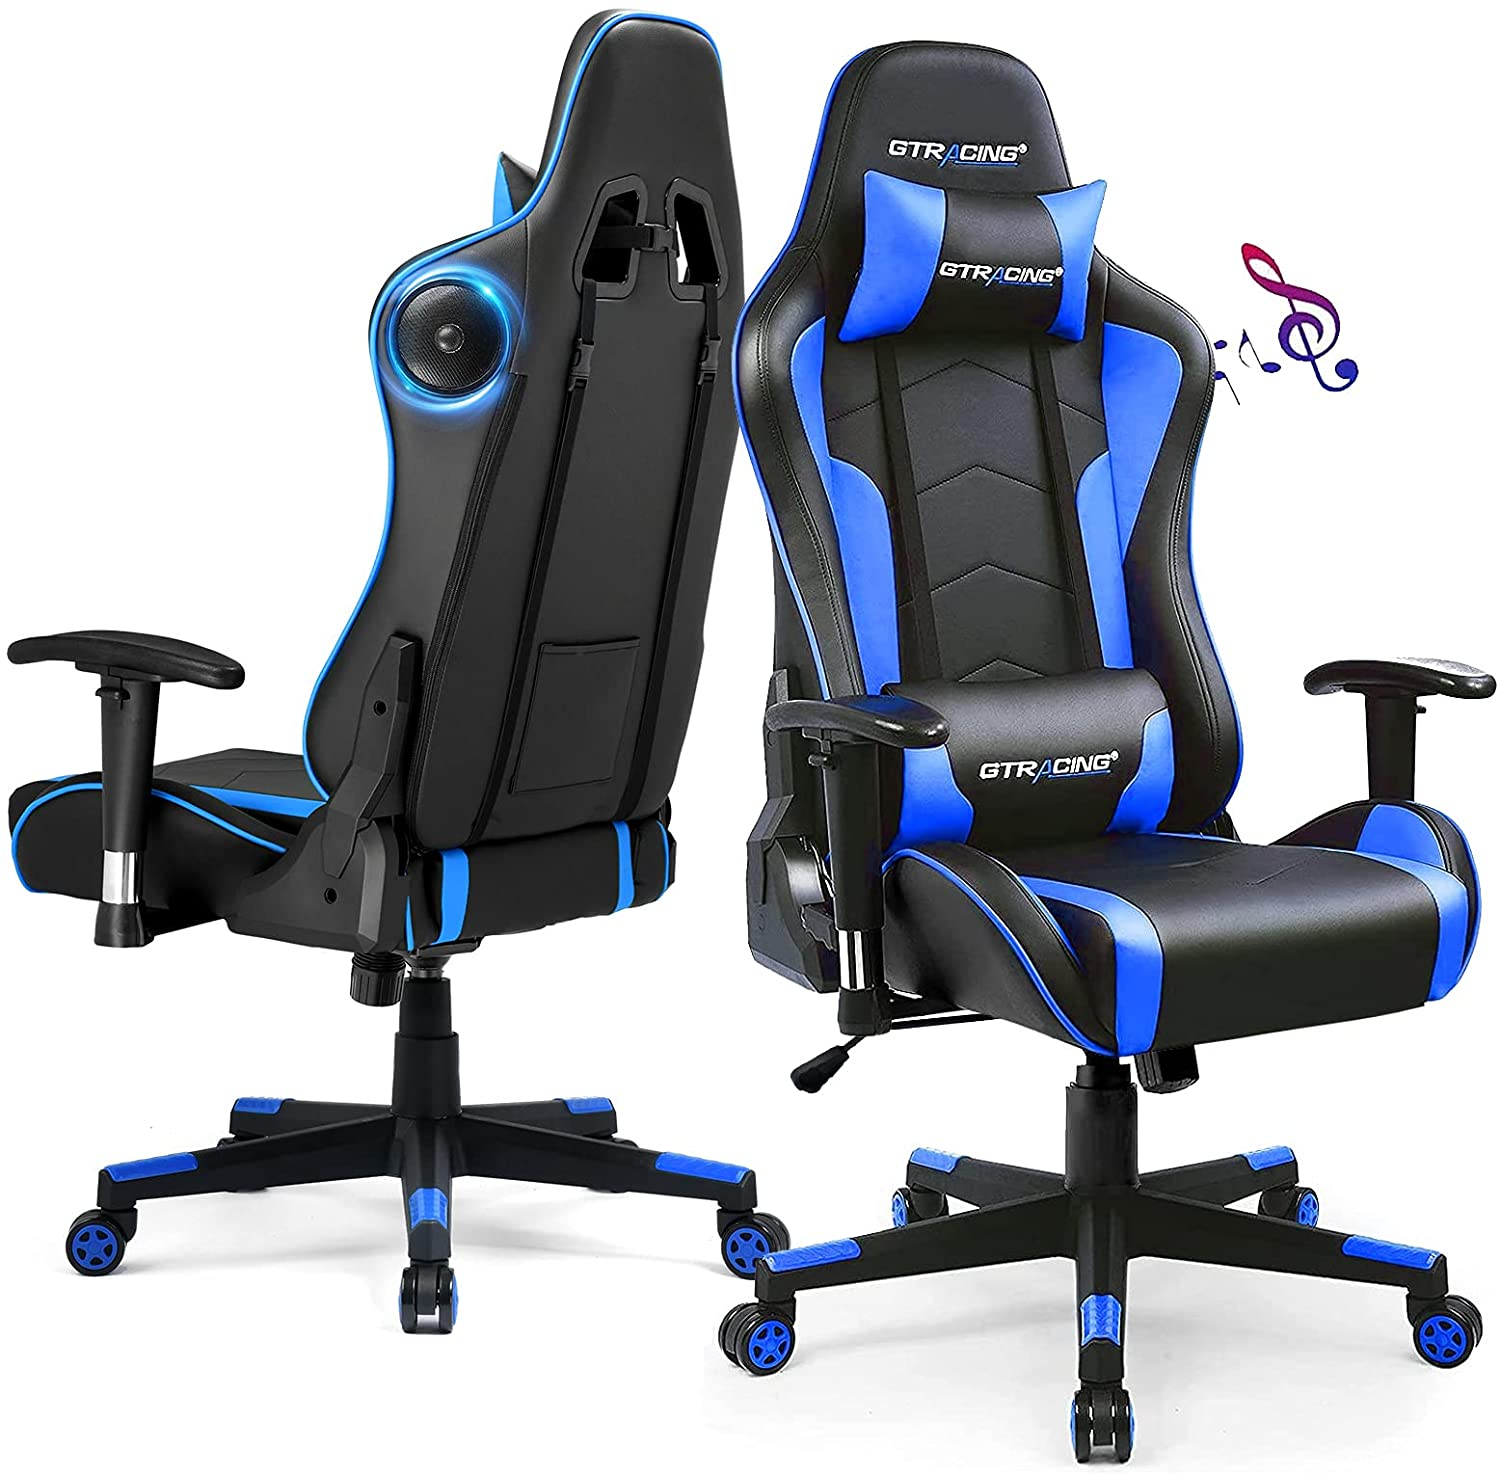 Gaming chair with bluetooth